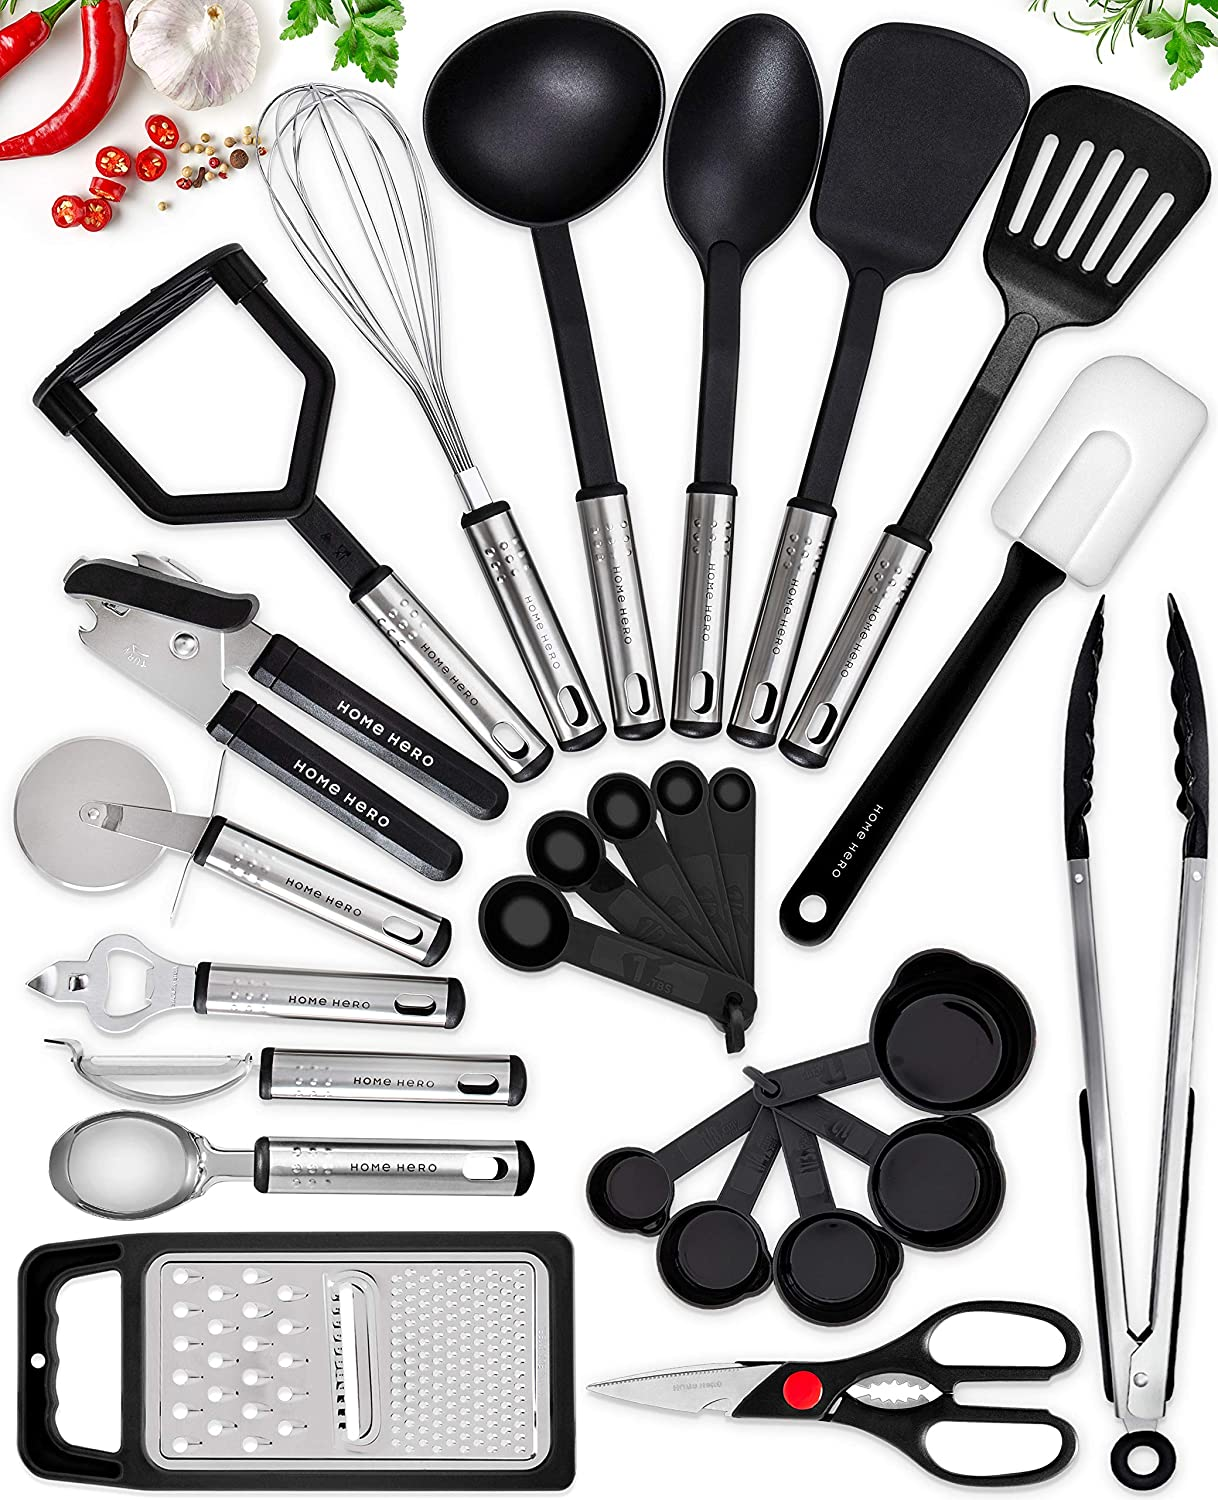 gifts-for-newlyweds-utensils